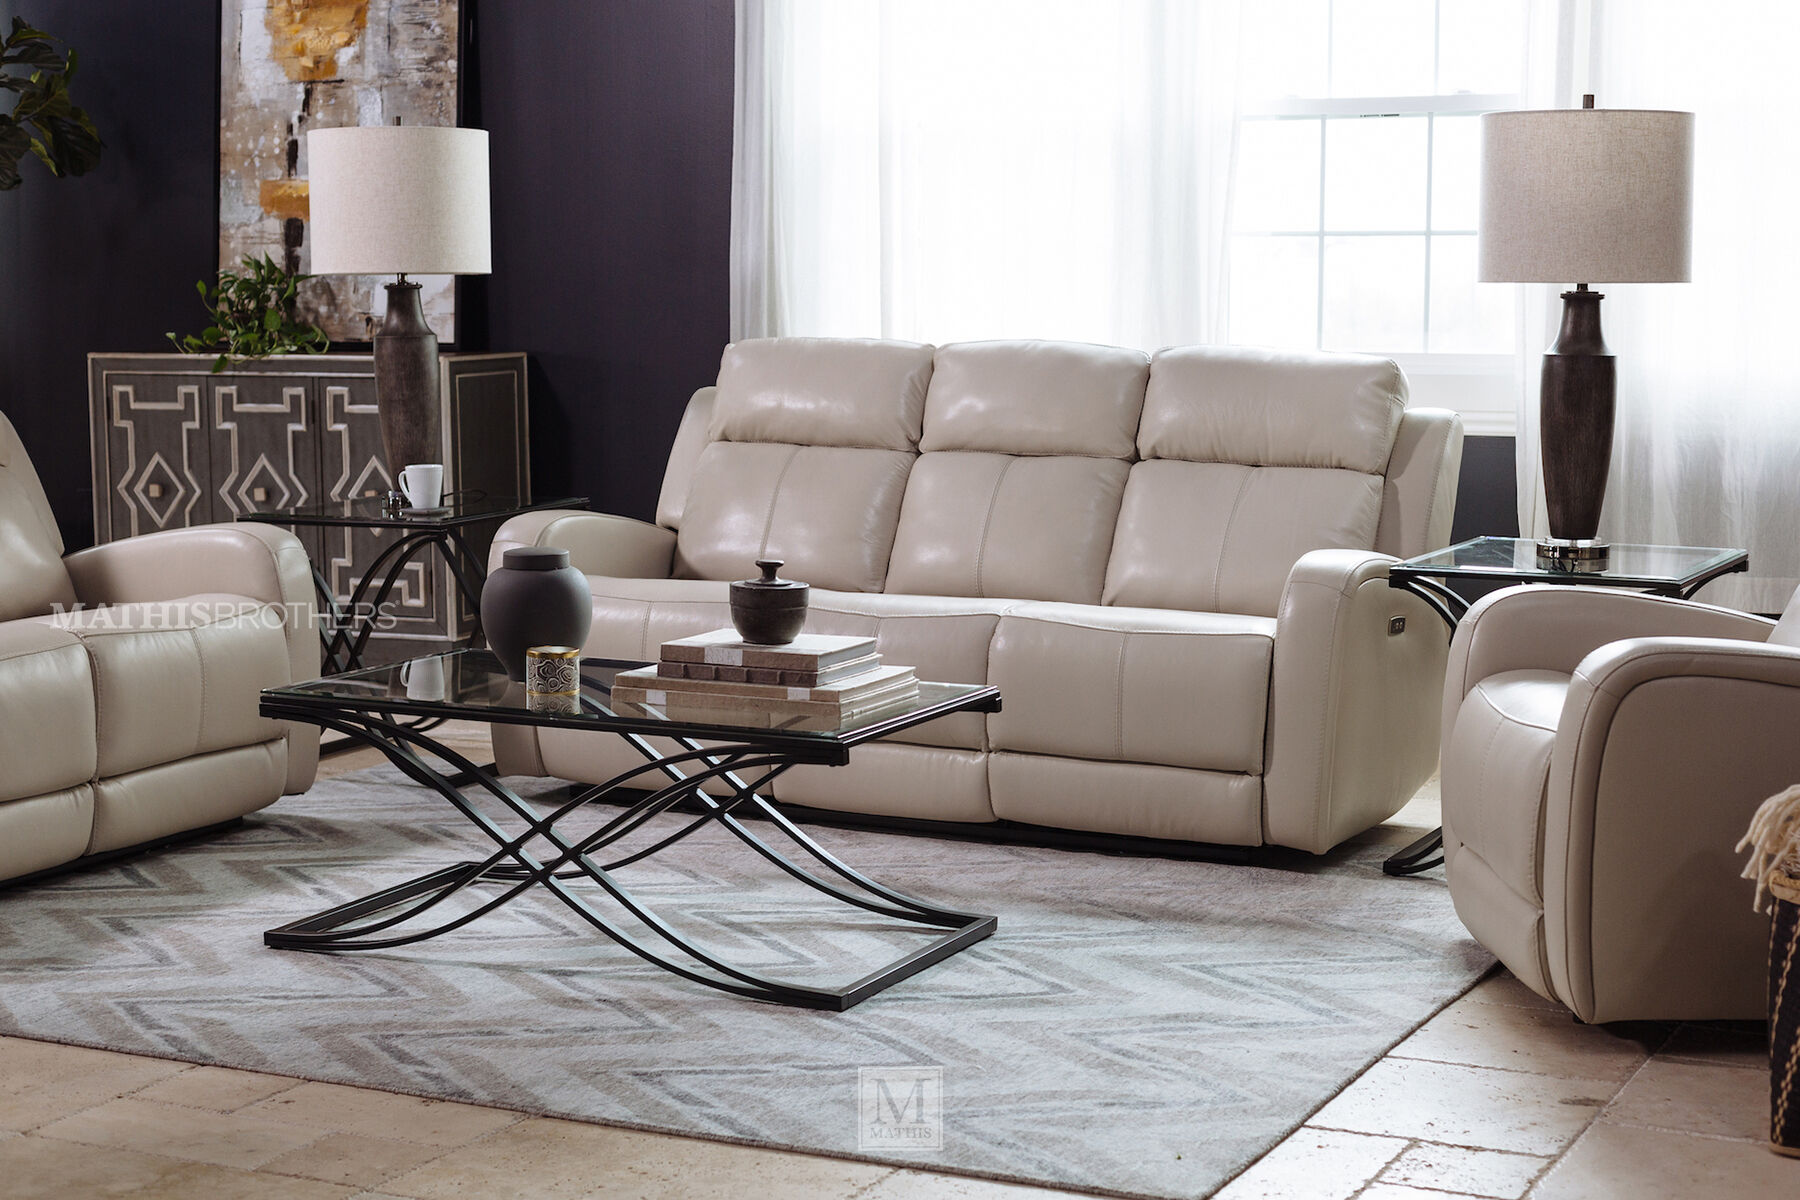 futura leather and vinyl power reclining sofa with headrest in stone folding bed uk sofas couches mathis brothers furniture stores 81 quot